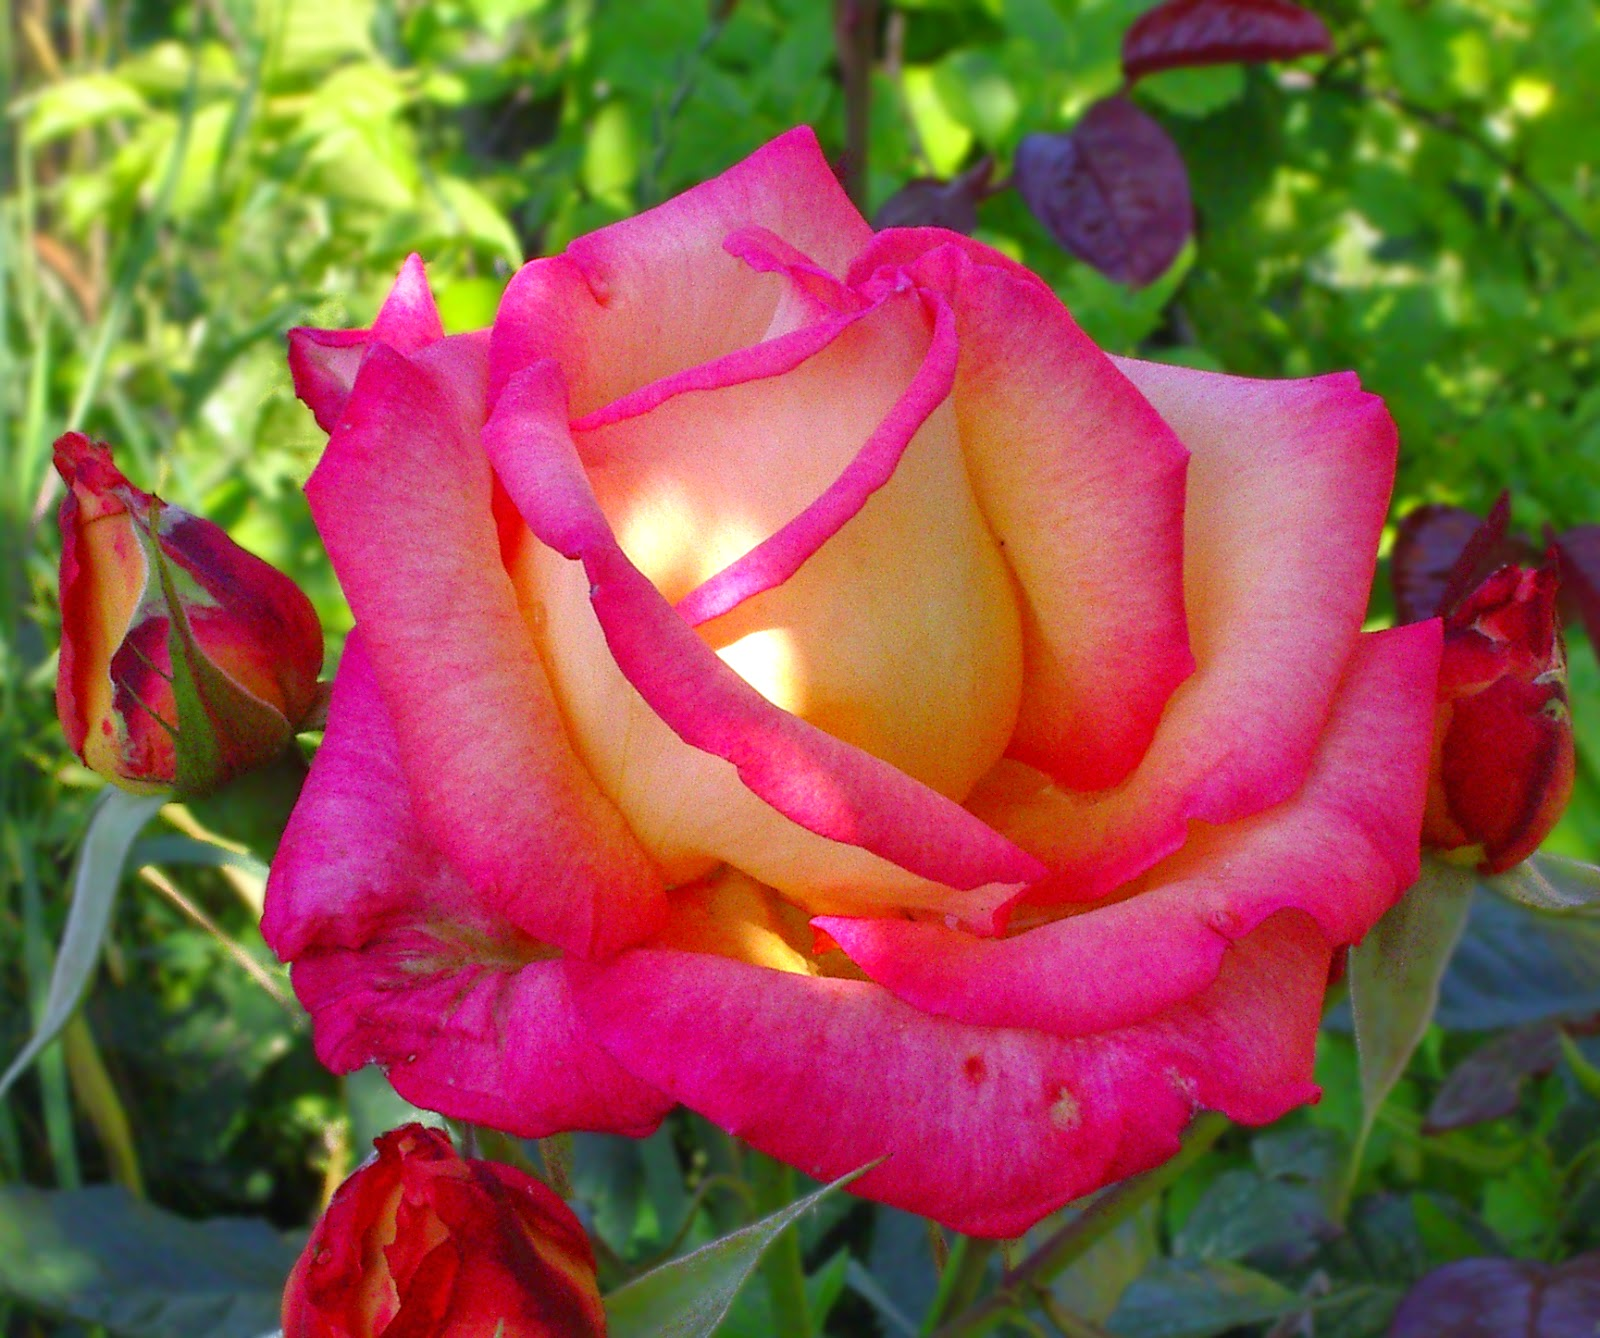 Beautiful-Flower-Rose-Photos-16